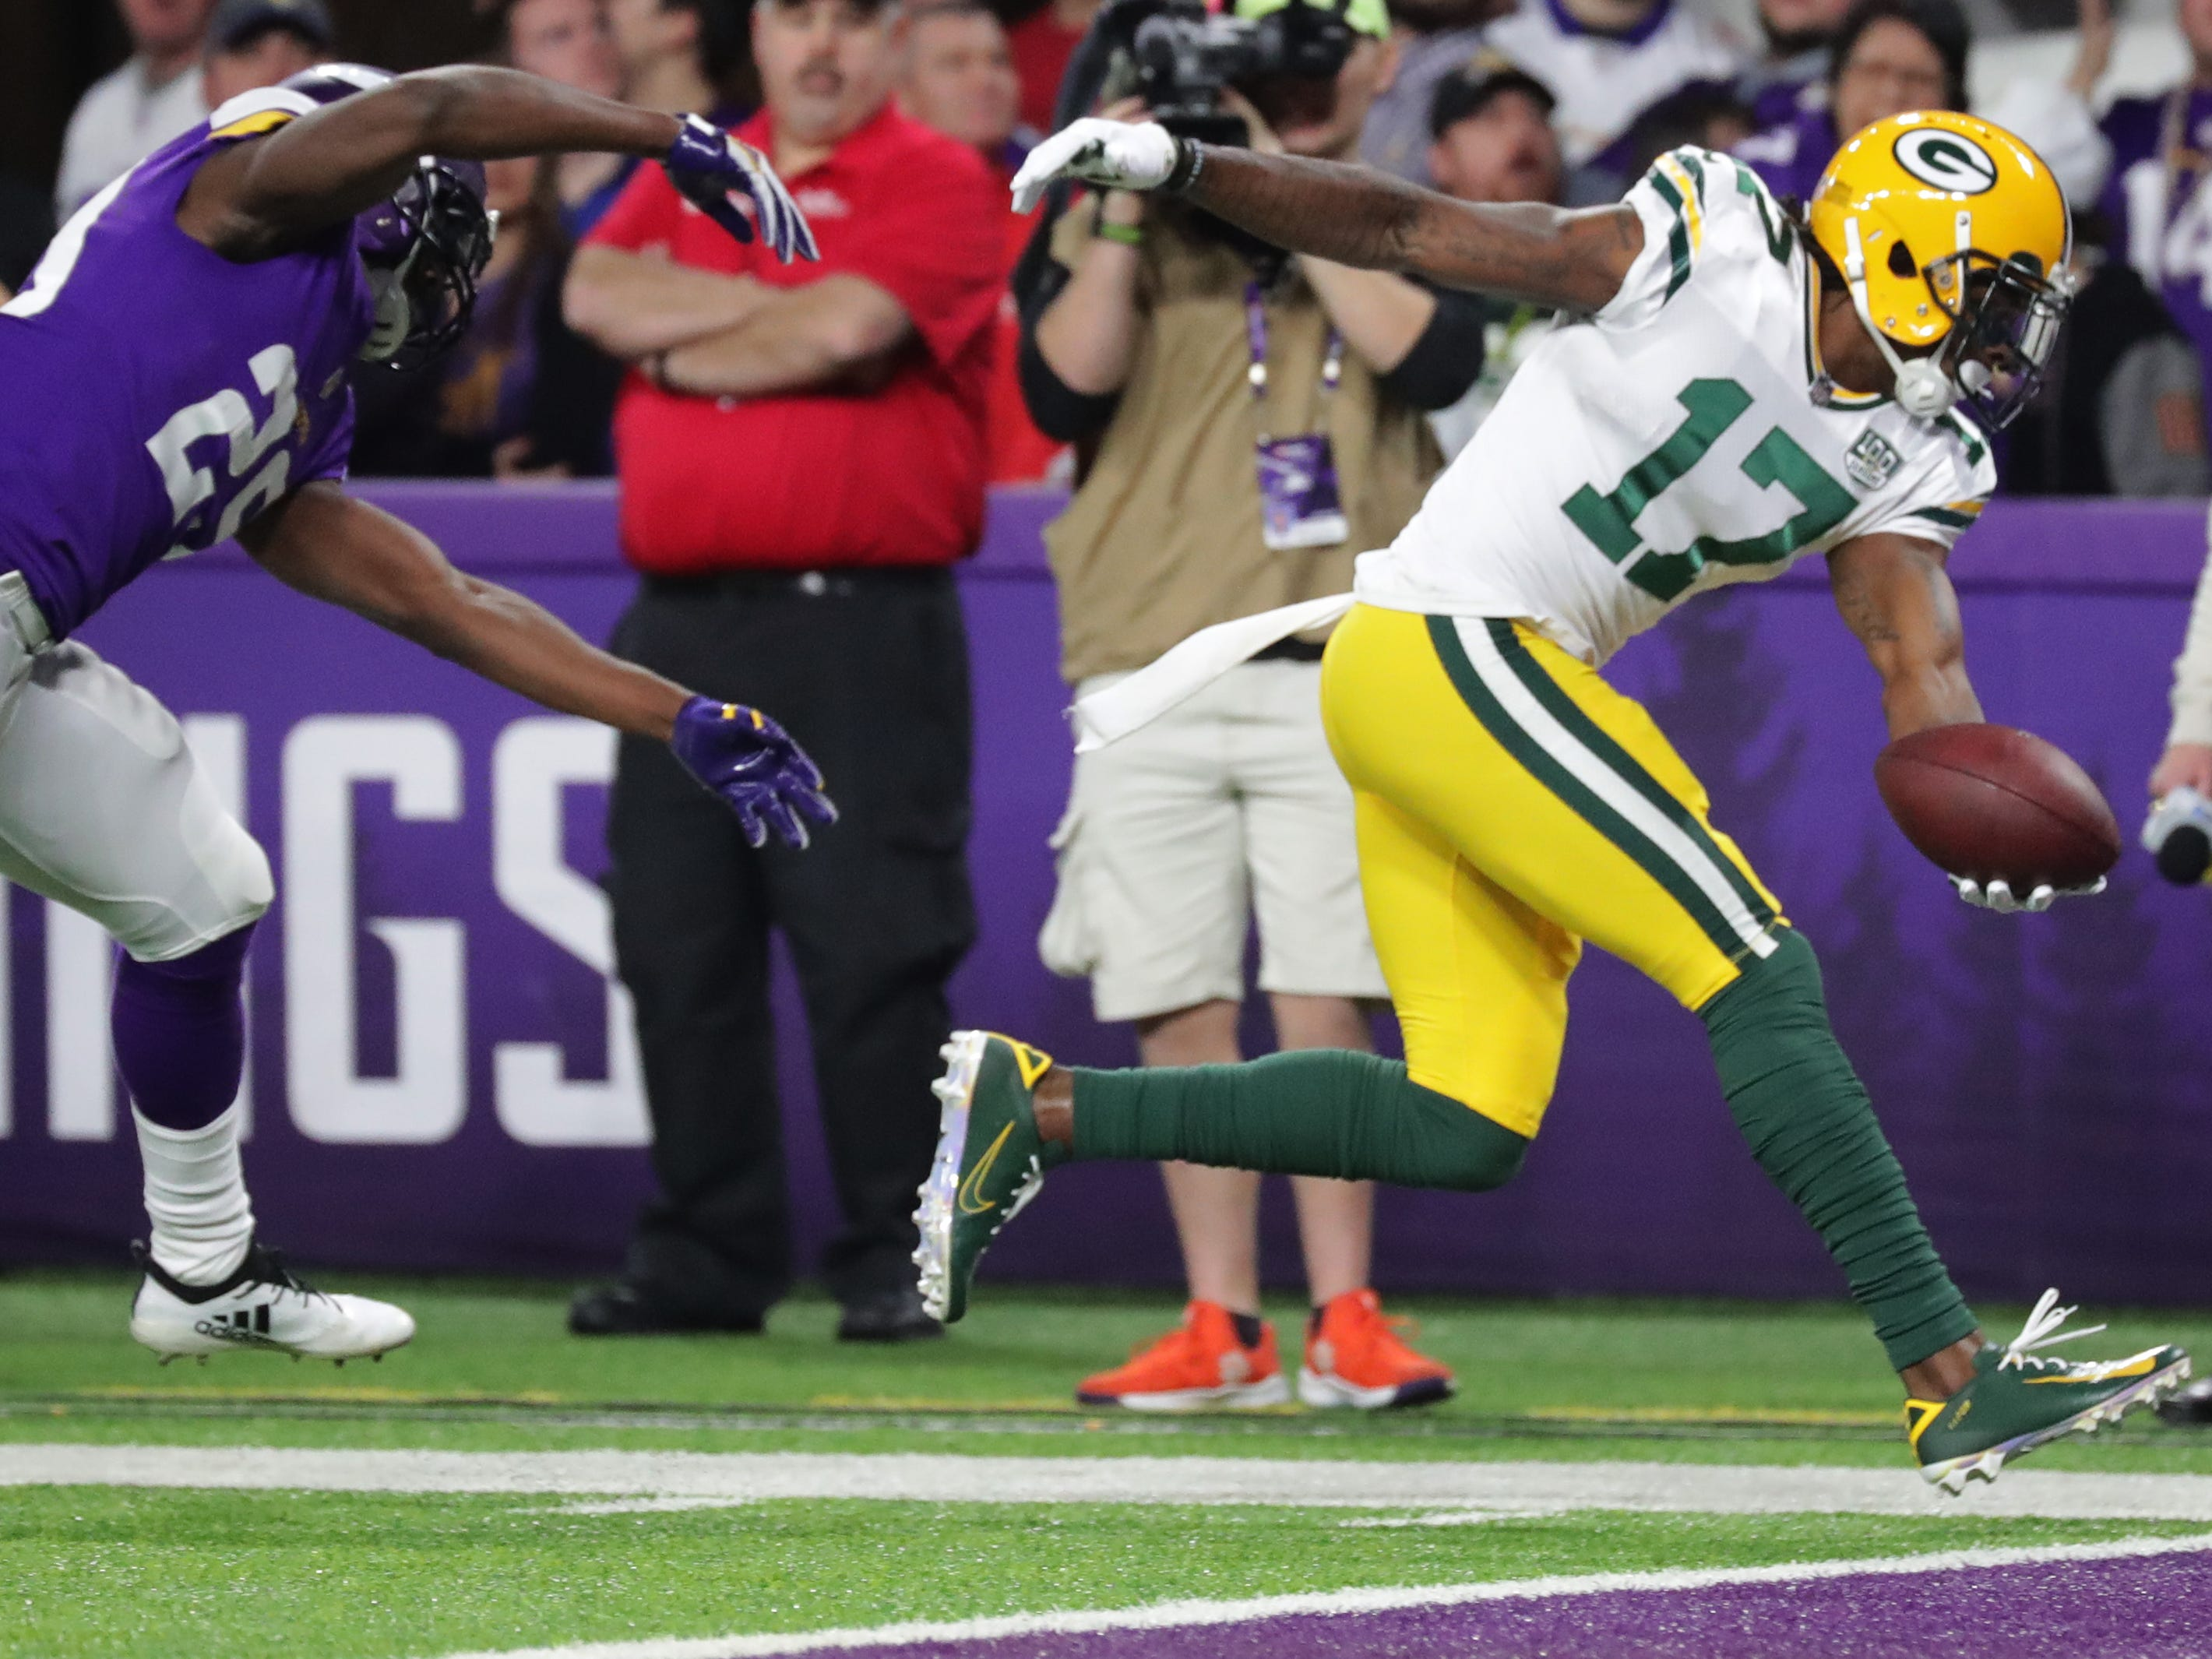 Green Bay Packers wide receiver Davante Adams (17) scores a touchdown on a 15-yard reception while being covered by Minnesota Vikings cornerback Xavier Rhodes (29) during the second quarter of their game Sunday, November 25, 2018 at U.S. Bank Stadium in Minneapolis, Minn.